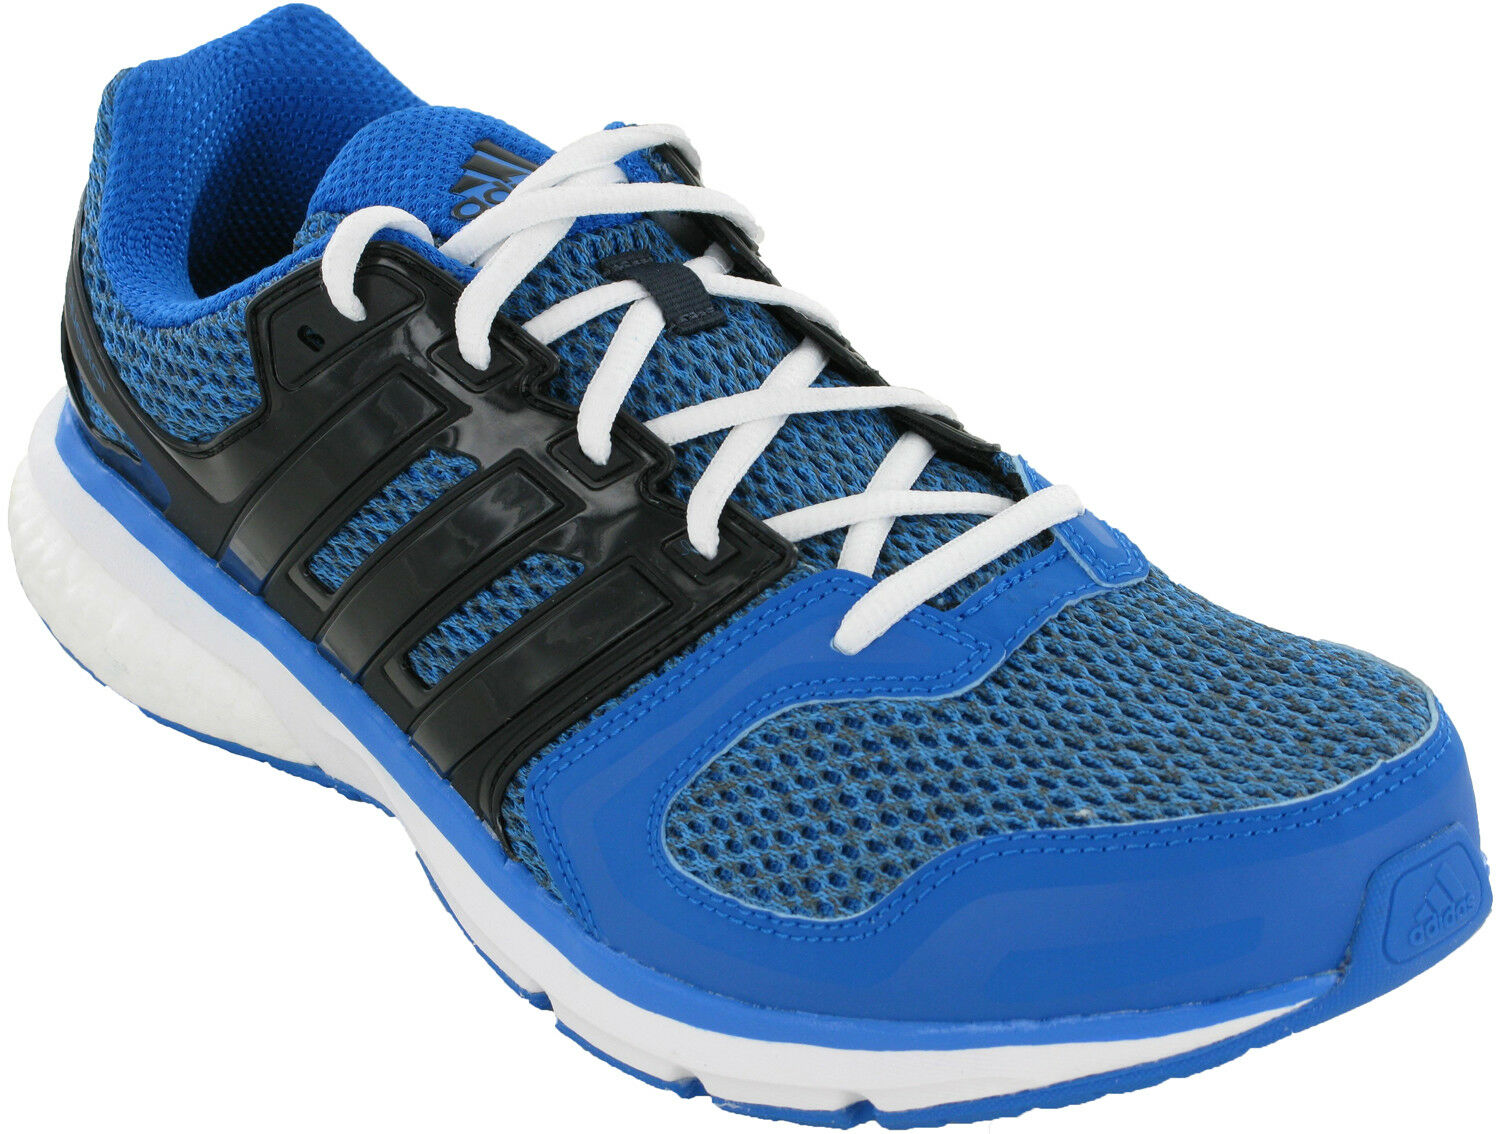 Adidas Questar Sports  Uomo Lace Up Blau Mesh Running Sports Questar Fitness Trainers Schuhes 4e2e94